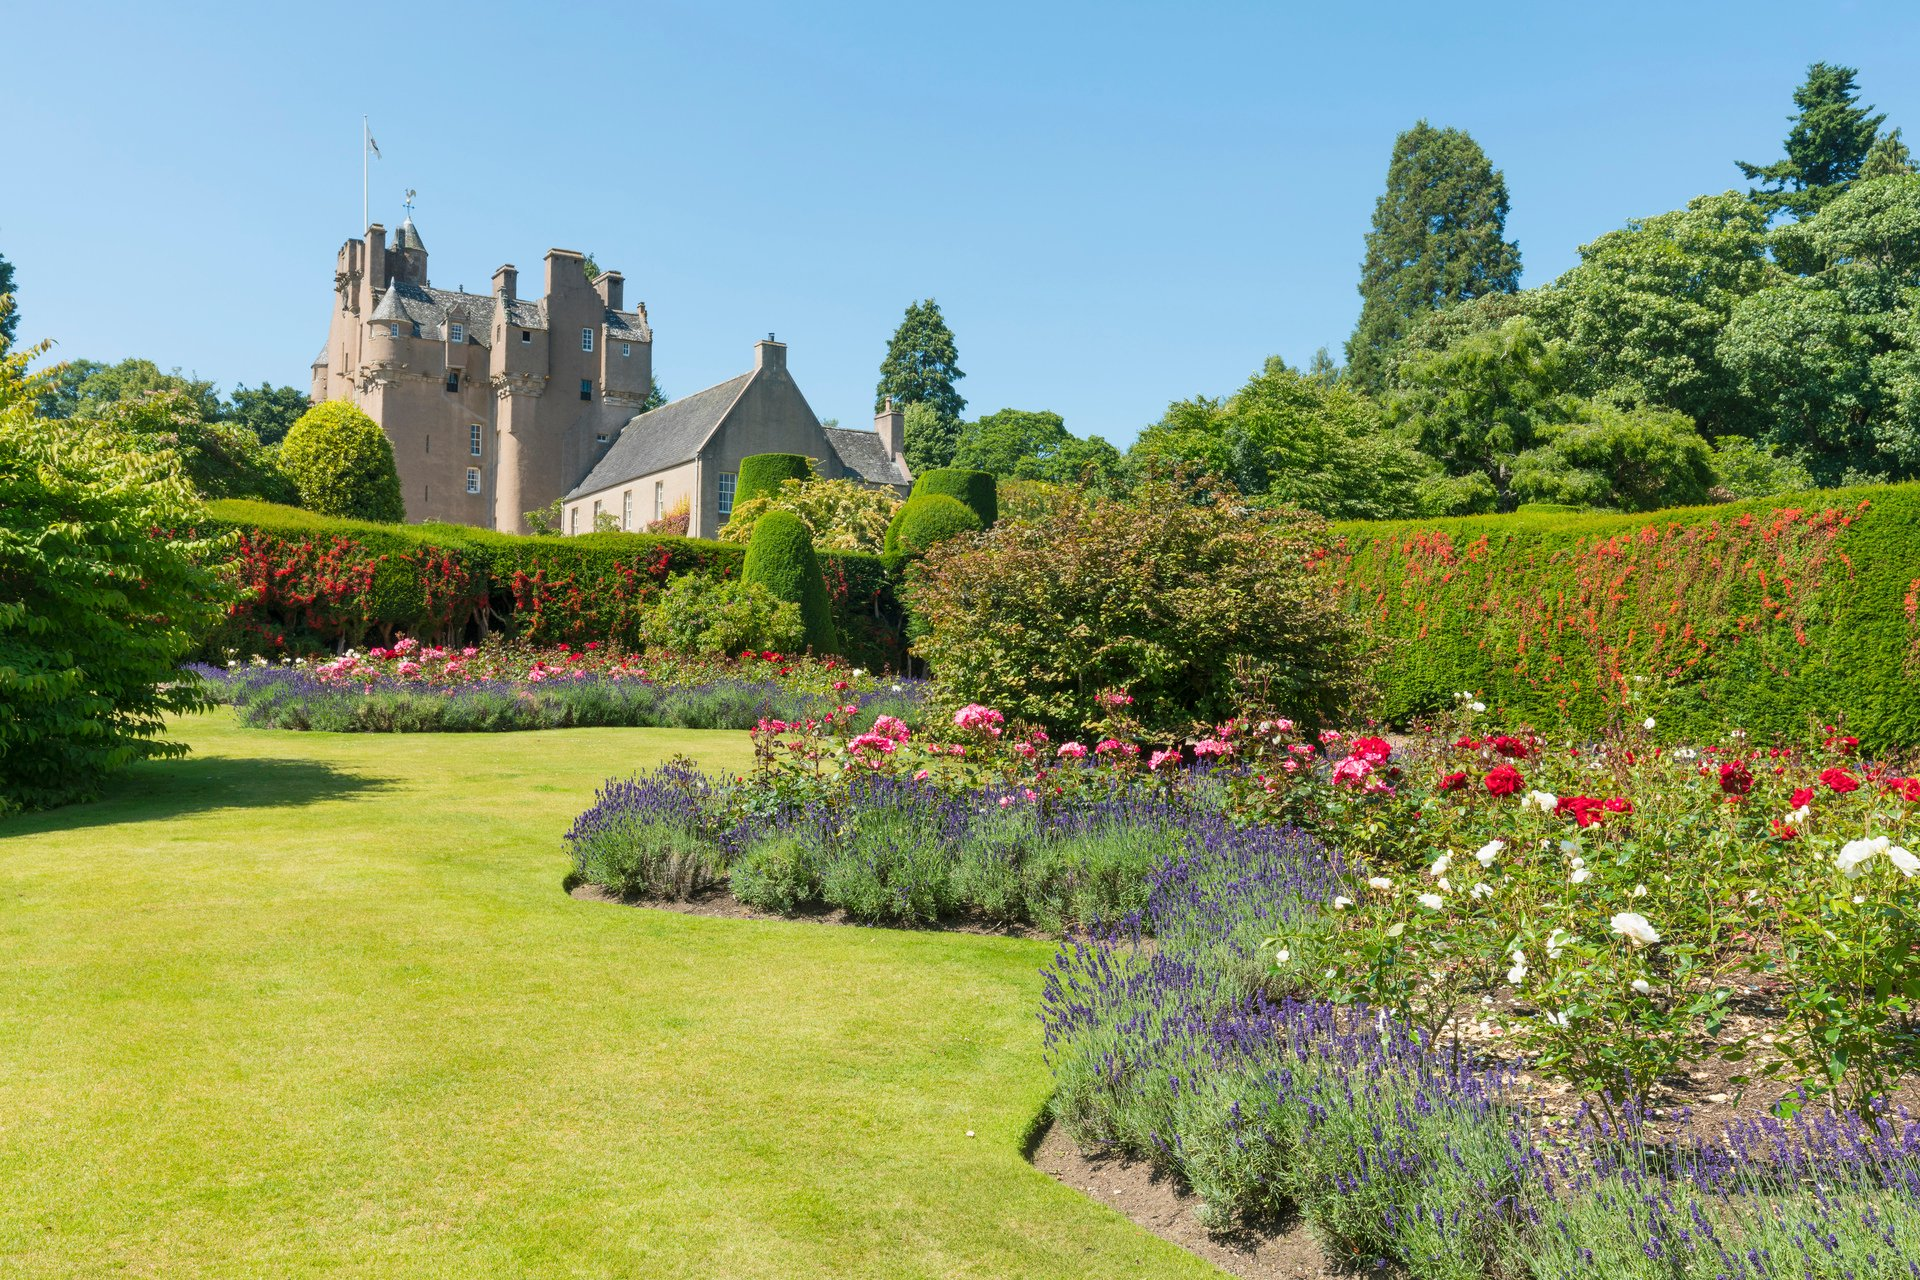 Crathes Castle © VisitScotland / Kenny Lam, all rights reserved